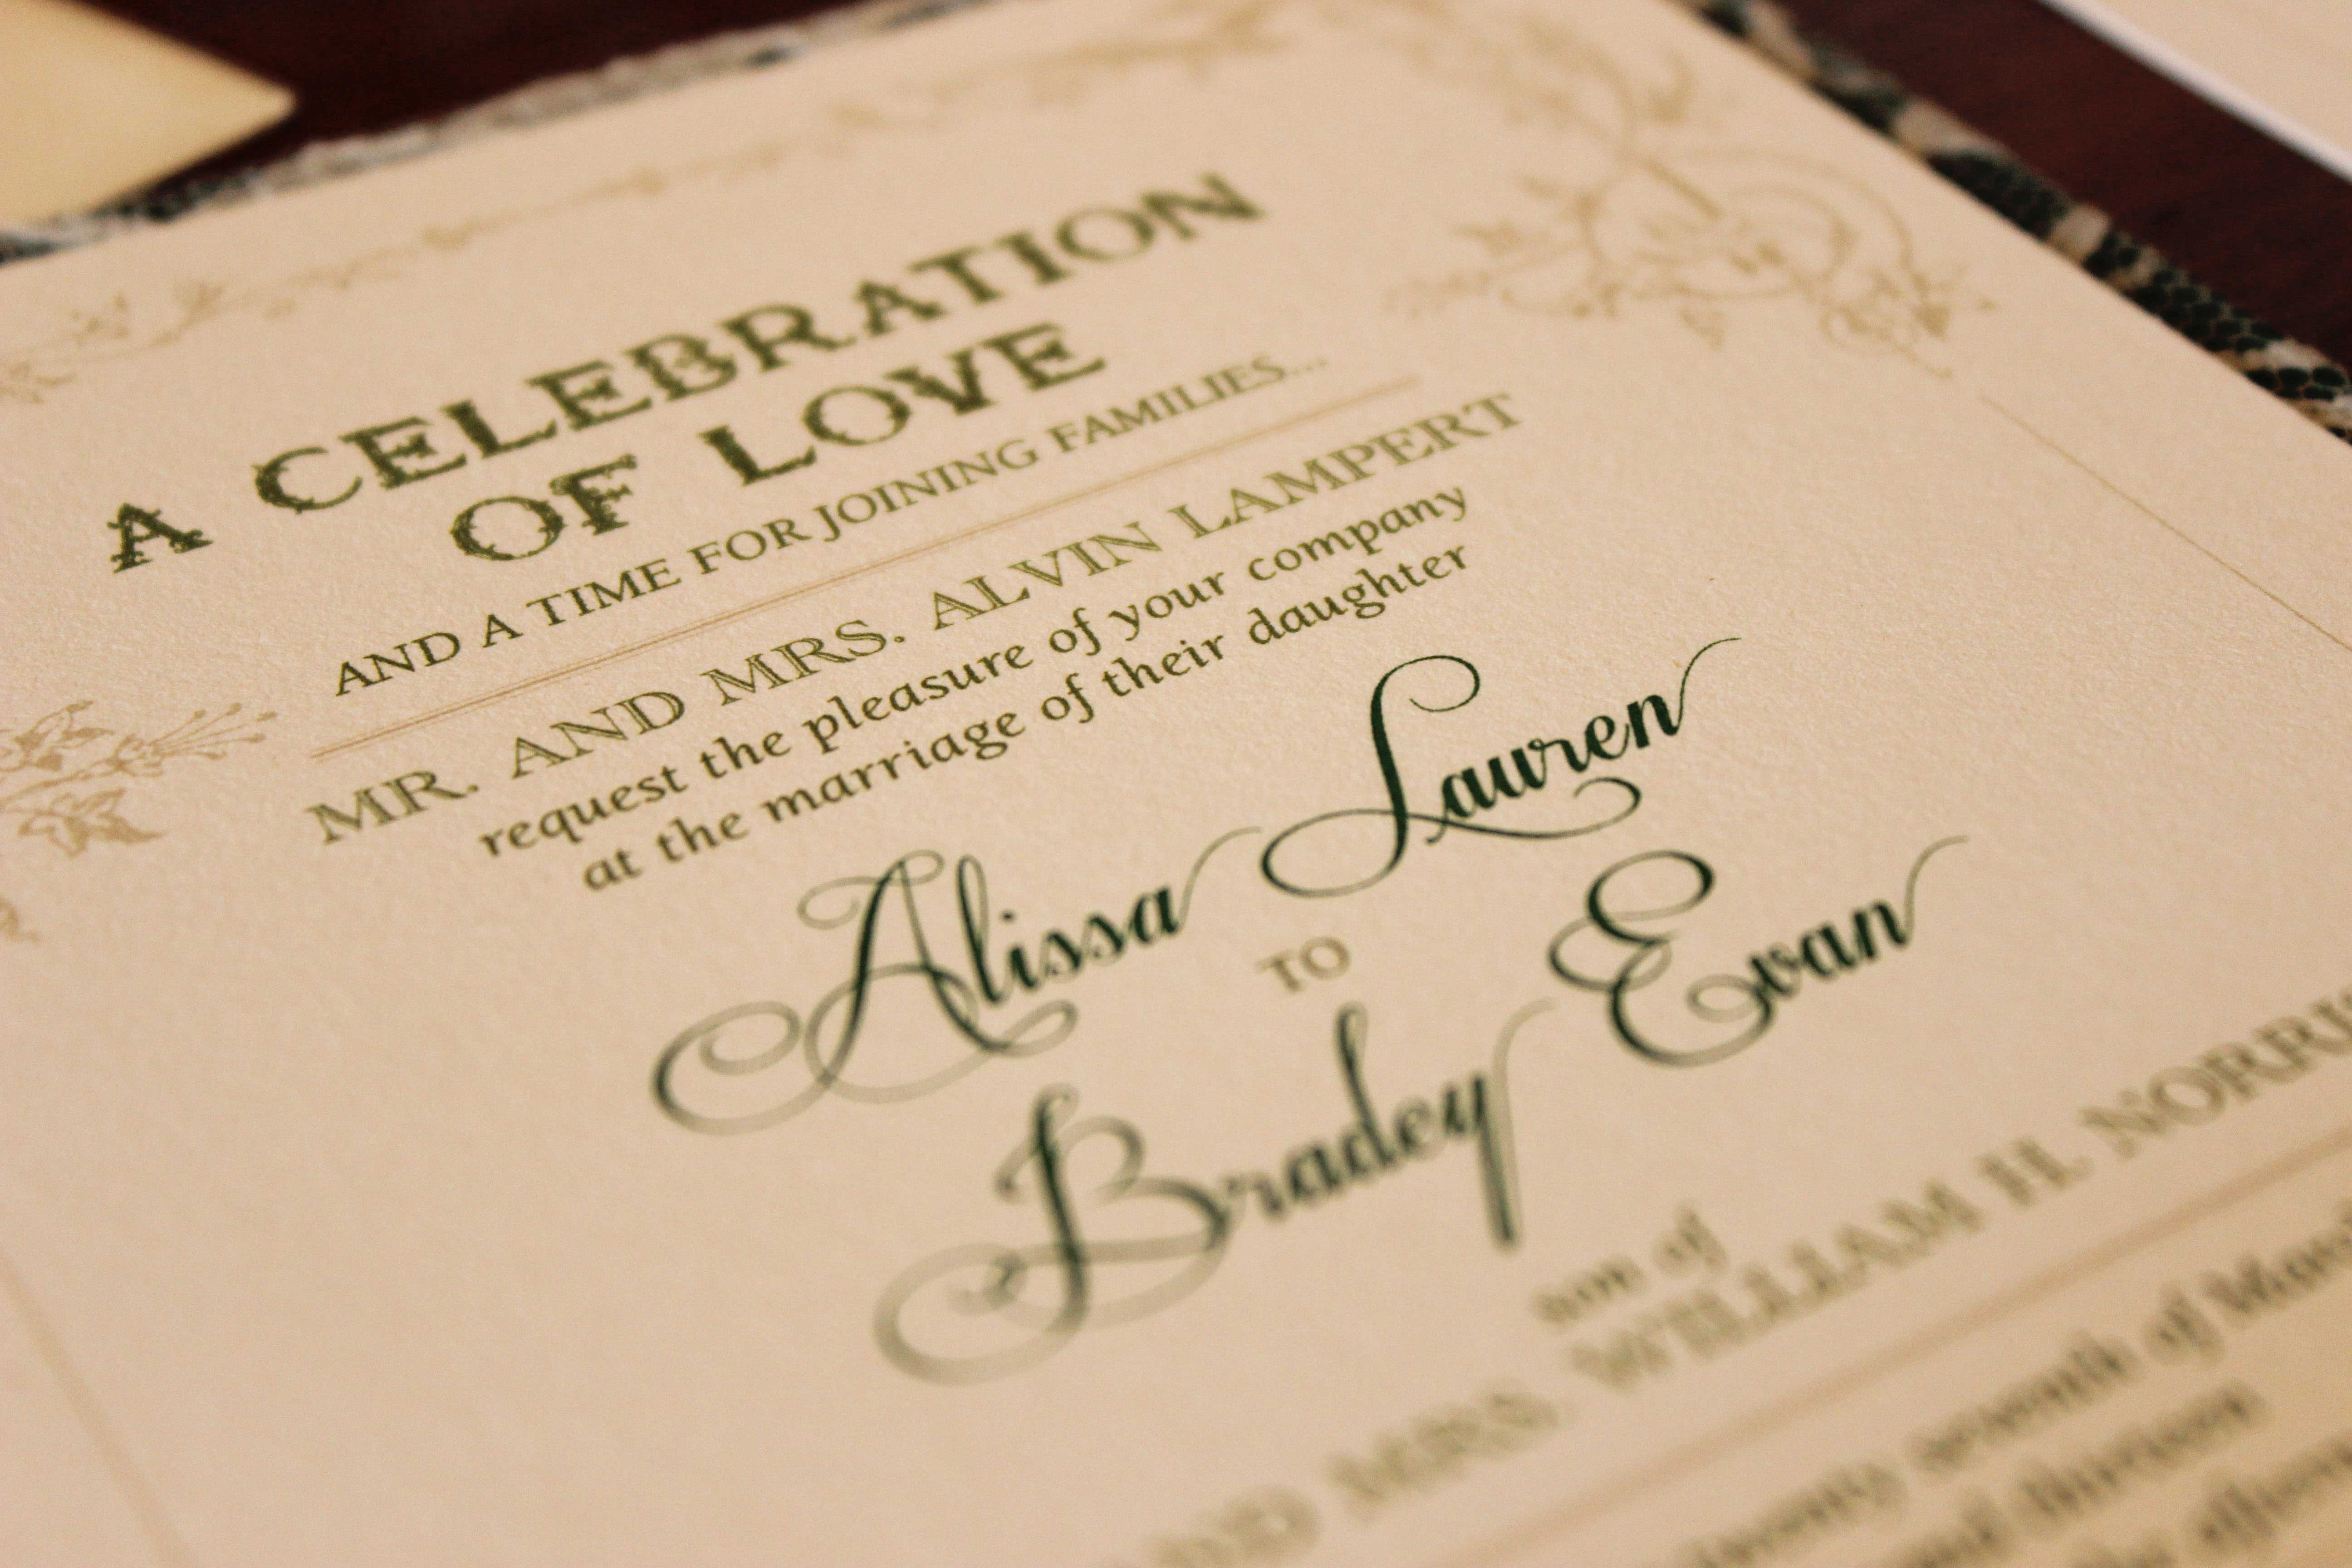 Wedding Invitation Etiquette: Special Wording Circumstances - Inside ...